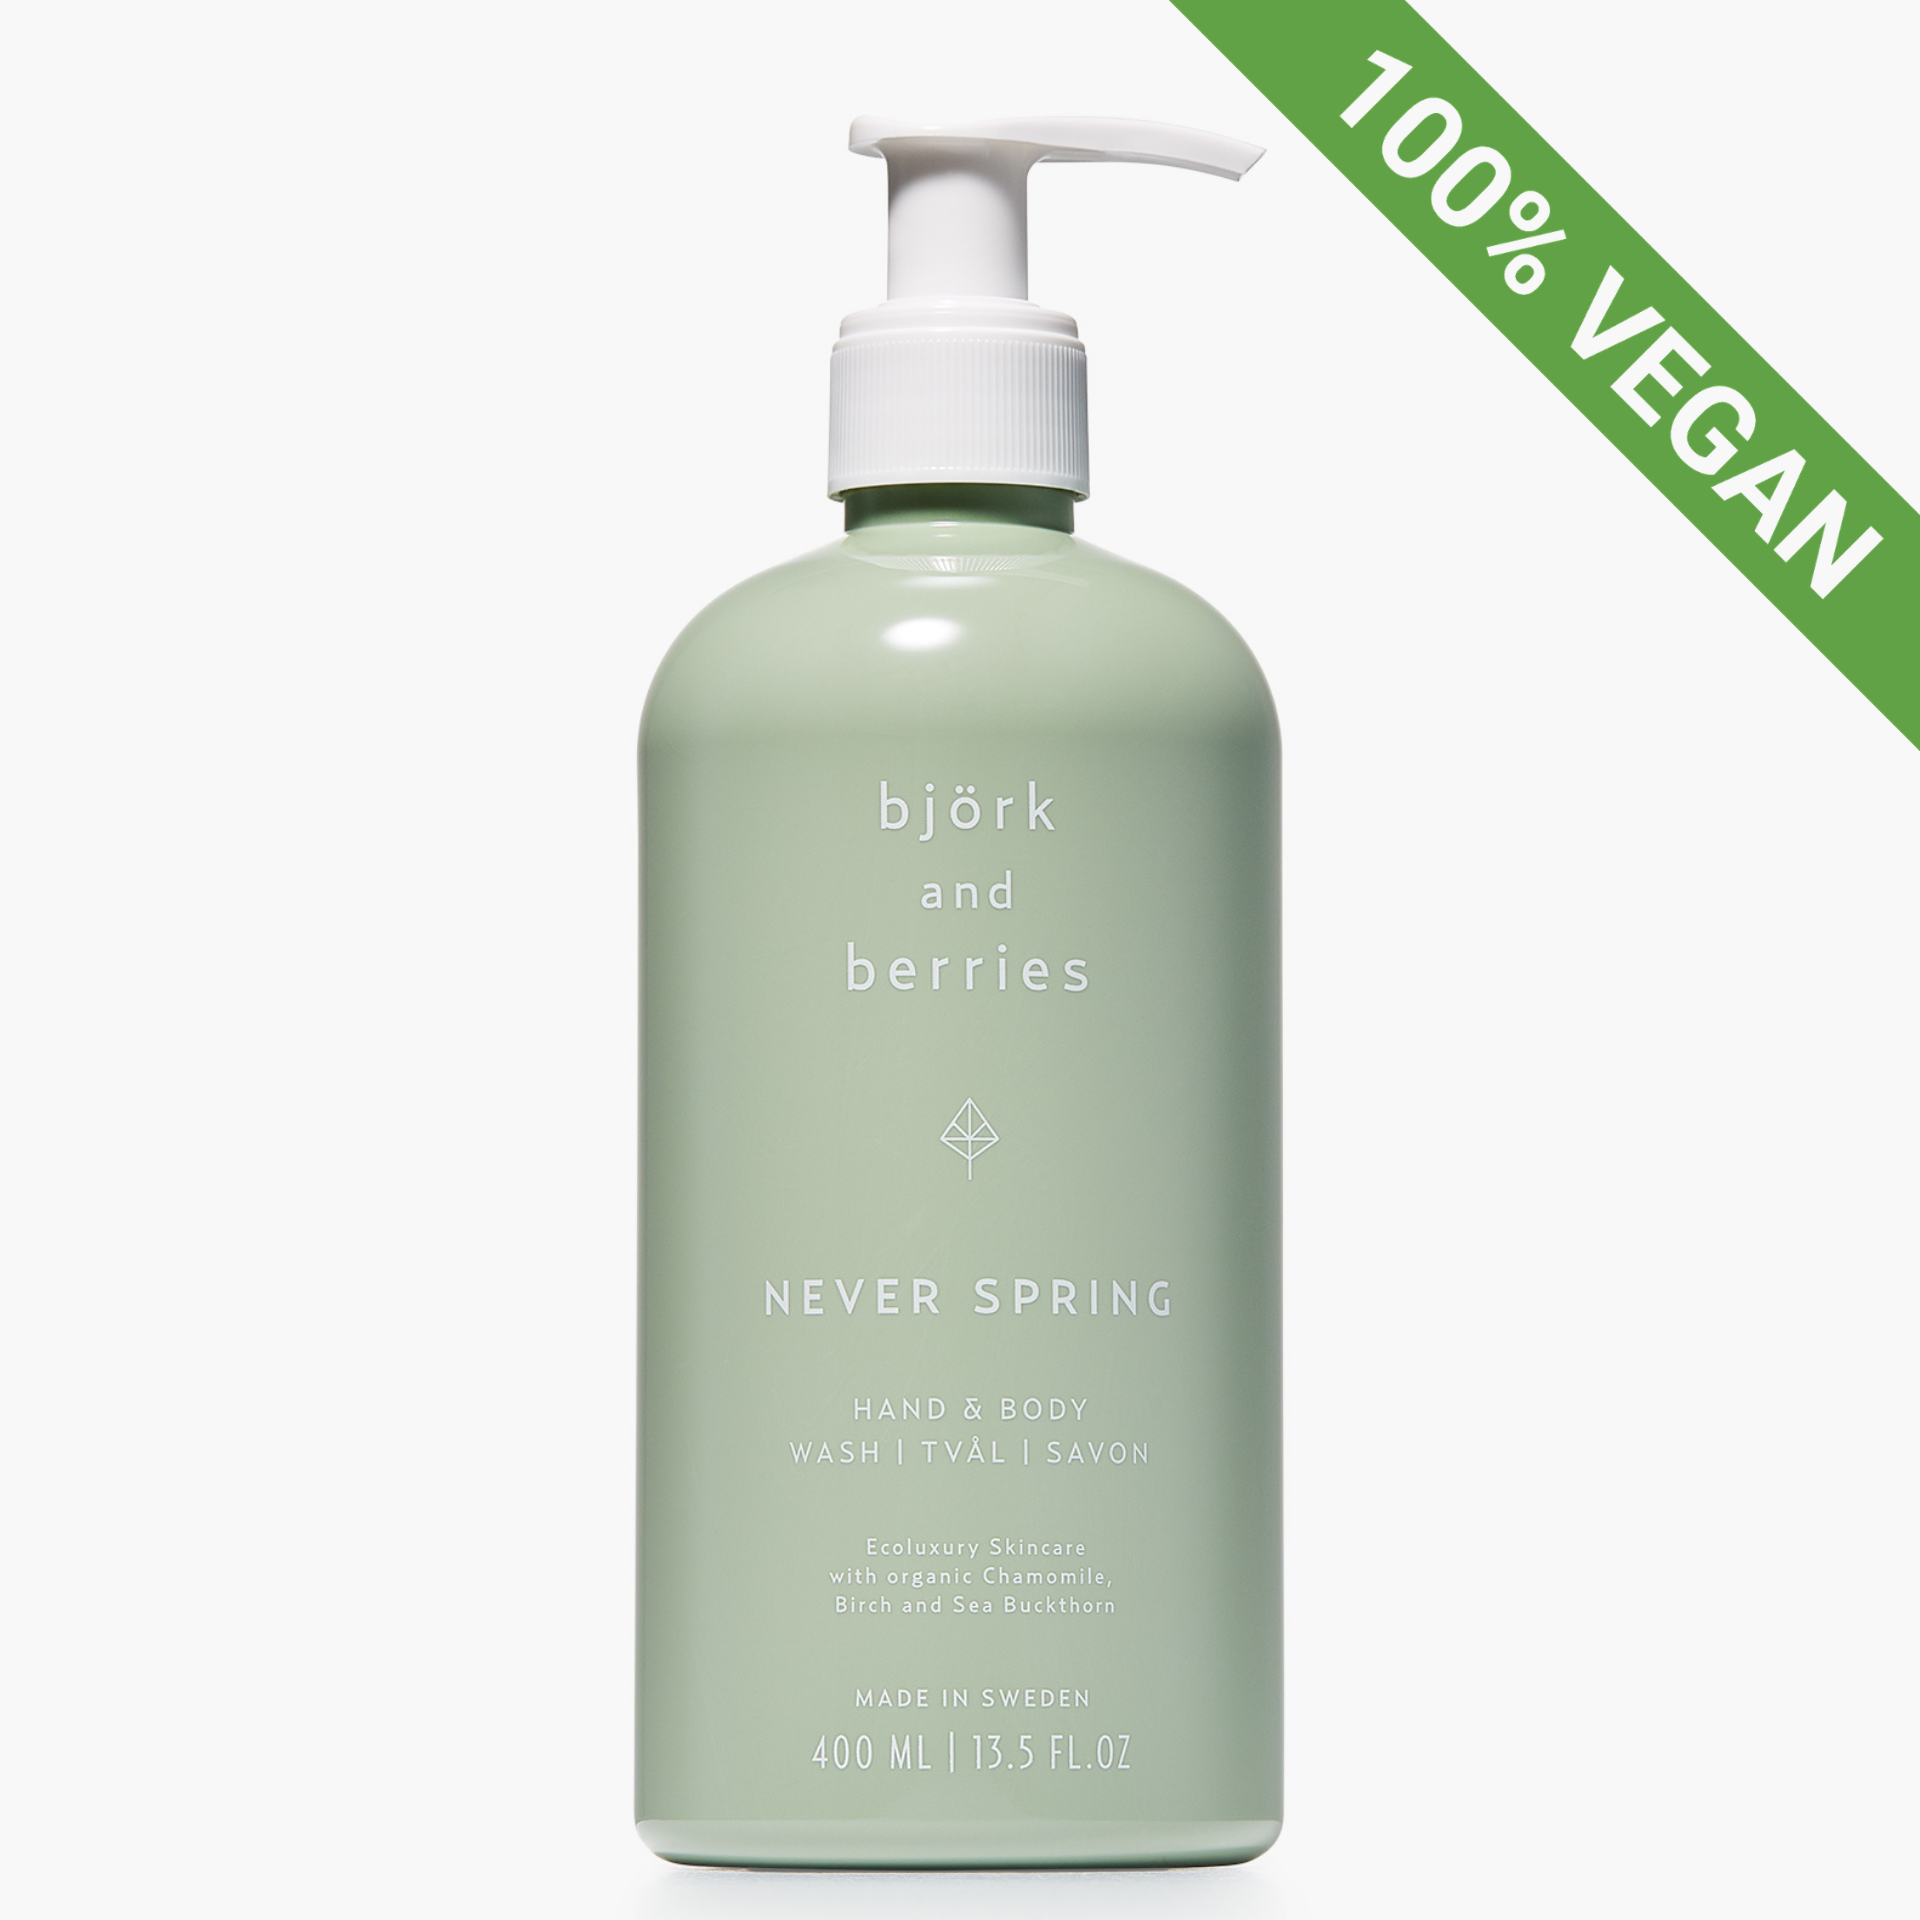 Hand & Body Wash | Never Spring | Vegan | 400 ml